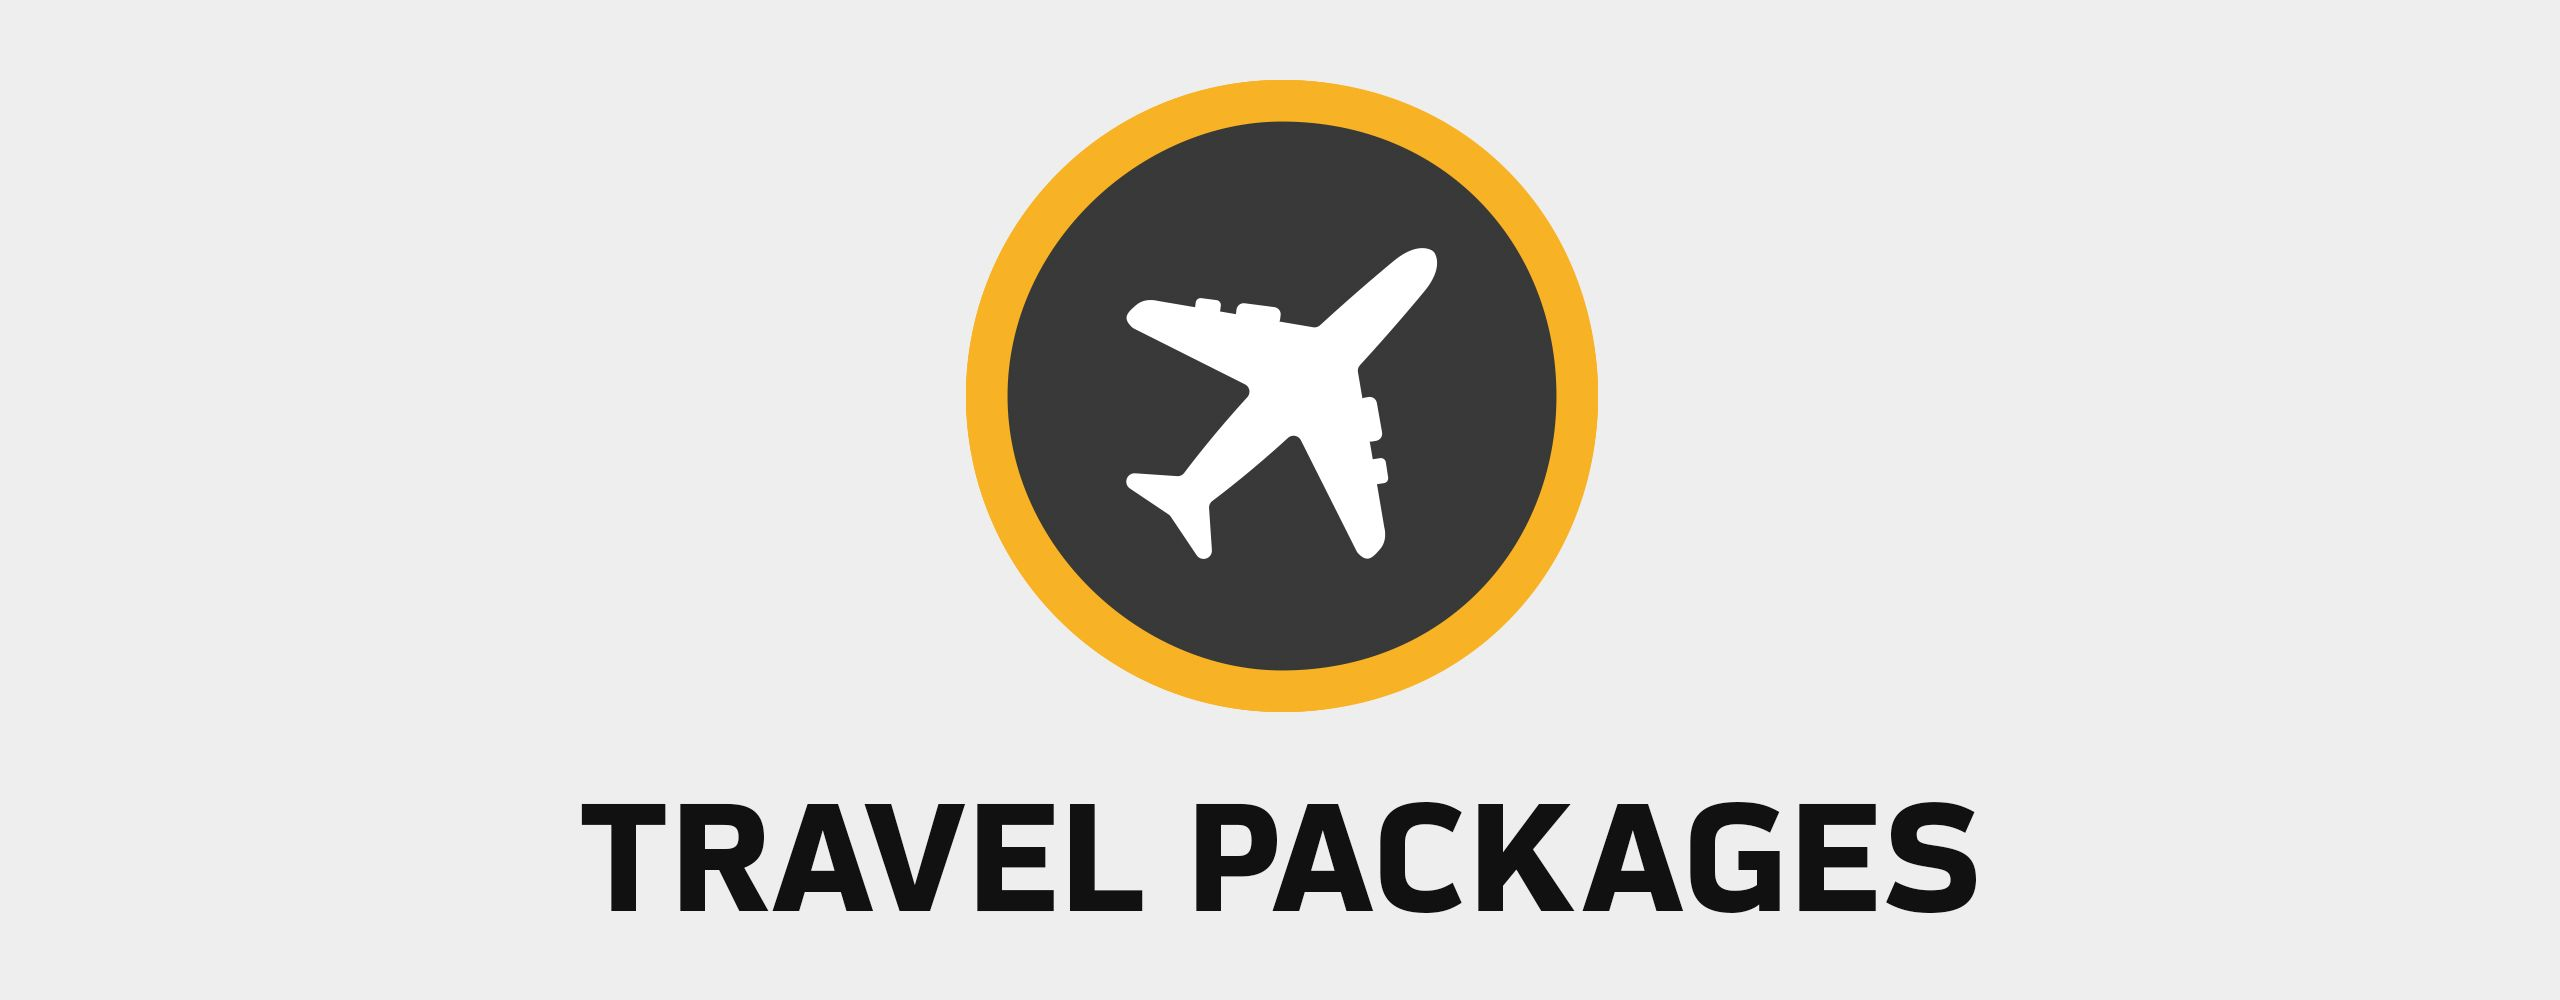 TravelPackages